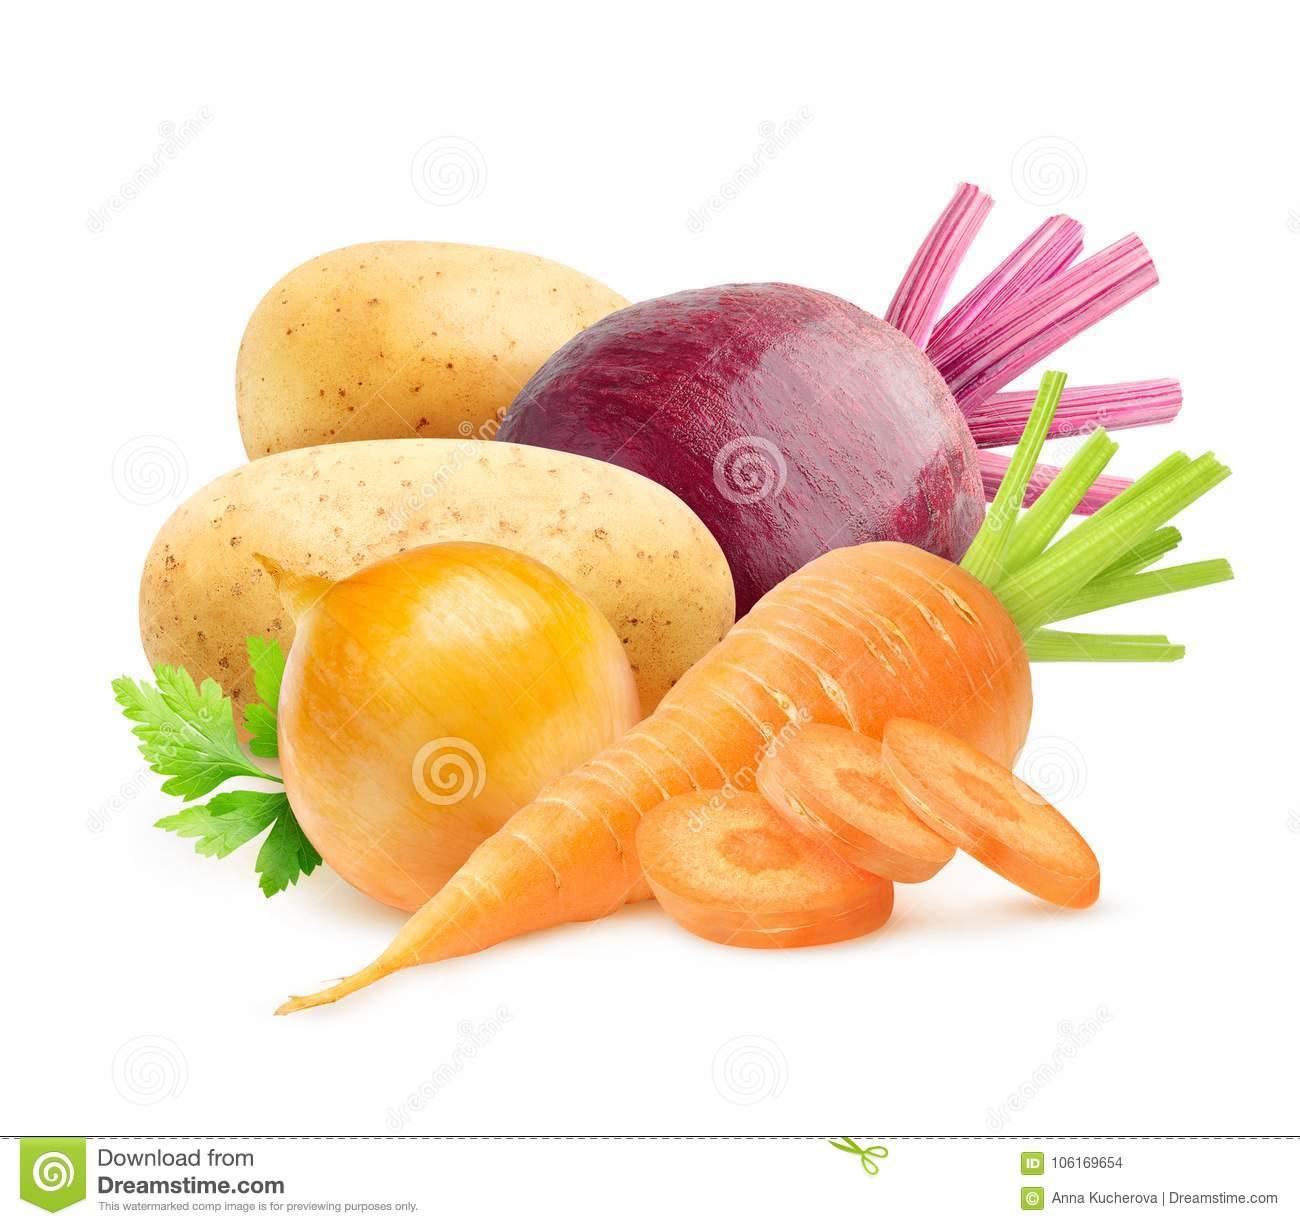 Isolated root vegetables stock photo. Image of organic ...